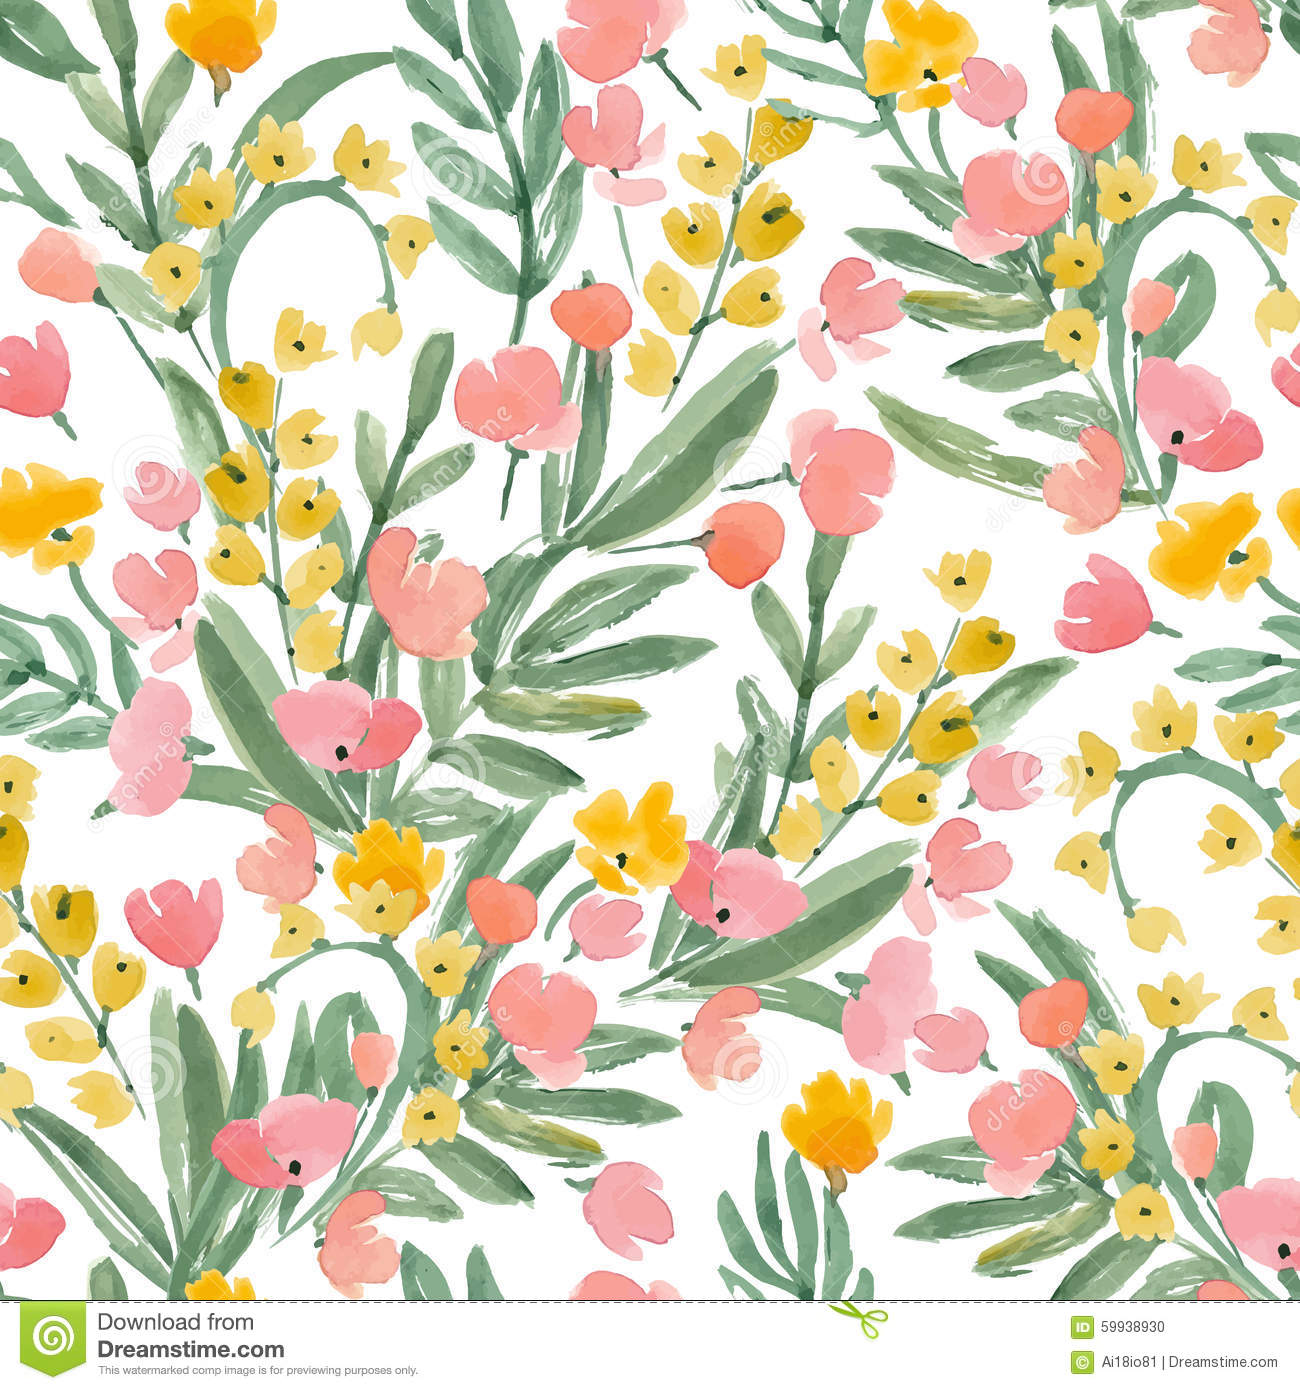 Vintage Watercolor Wallpaper Of Hand Drawn Flowers And